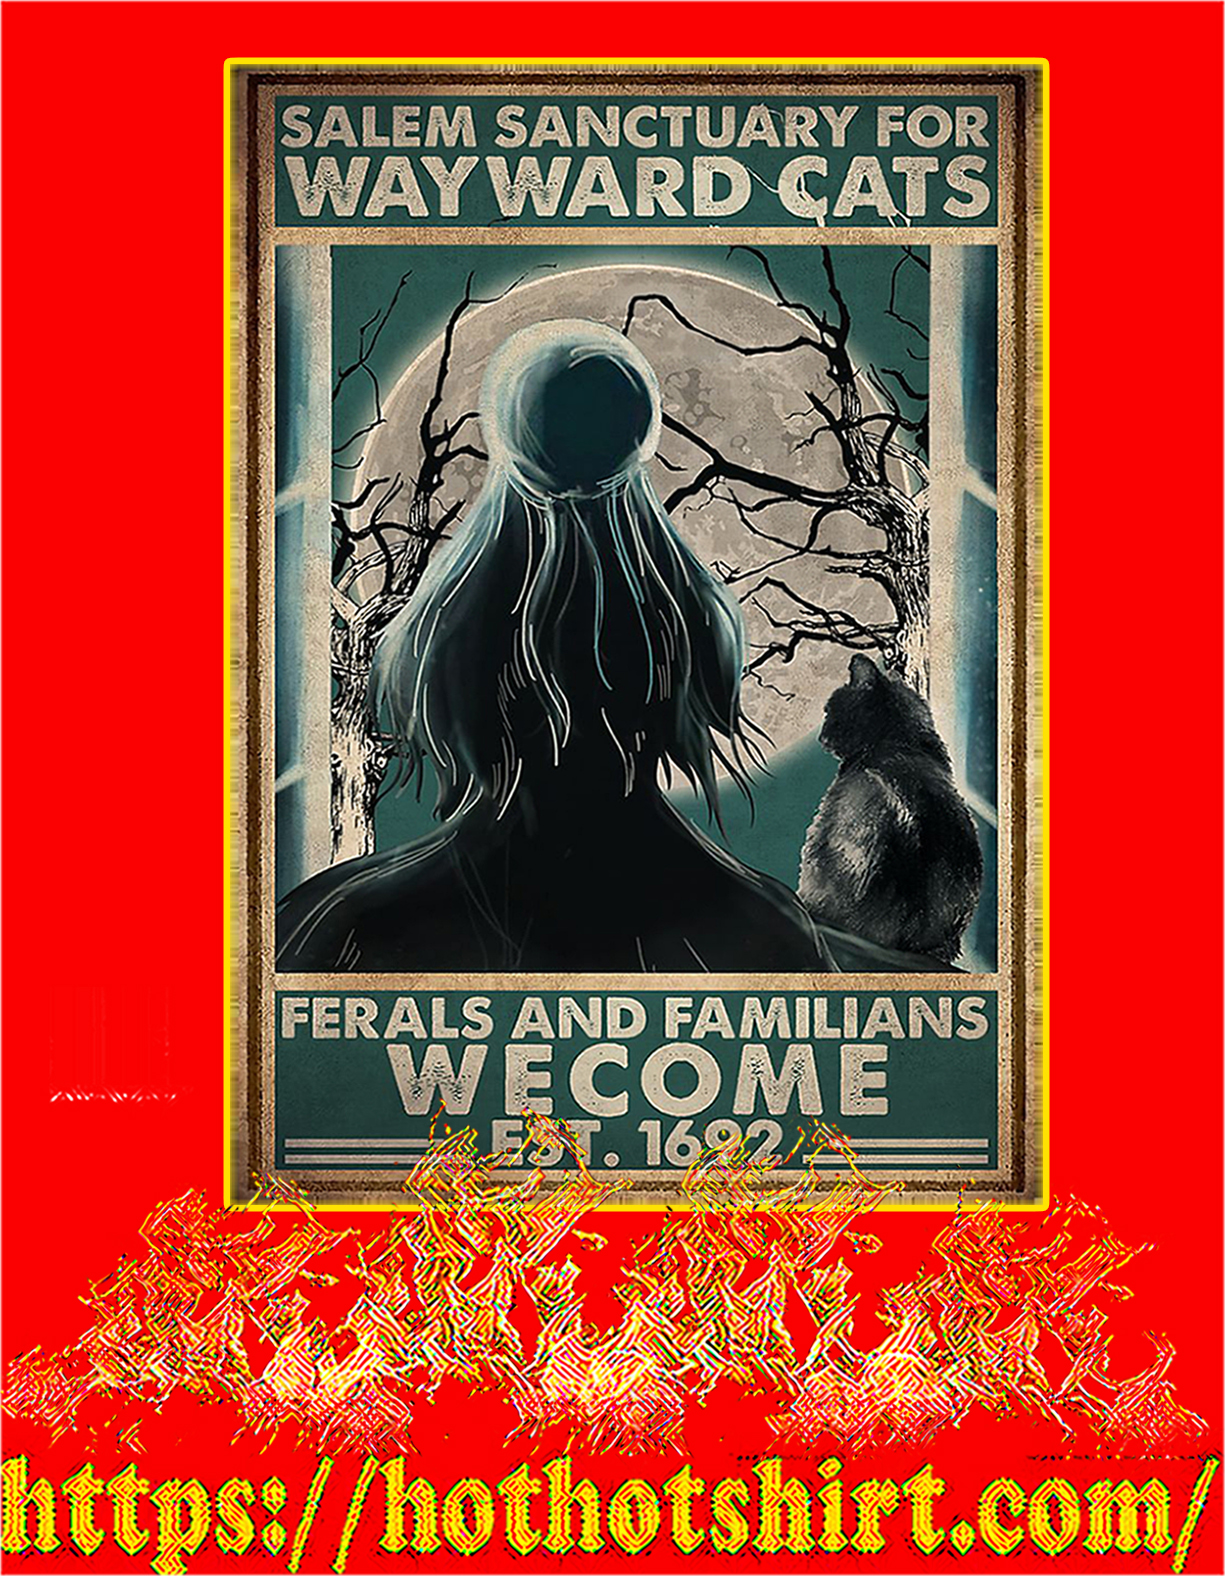 Witch Salem sanctuary for wayward cats ferals and familians welcome est 1692 poster - A4